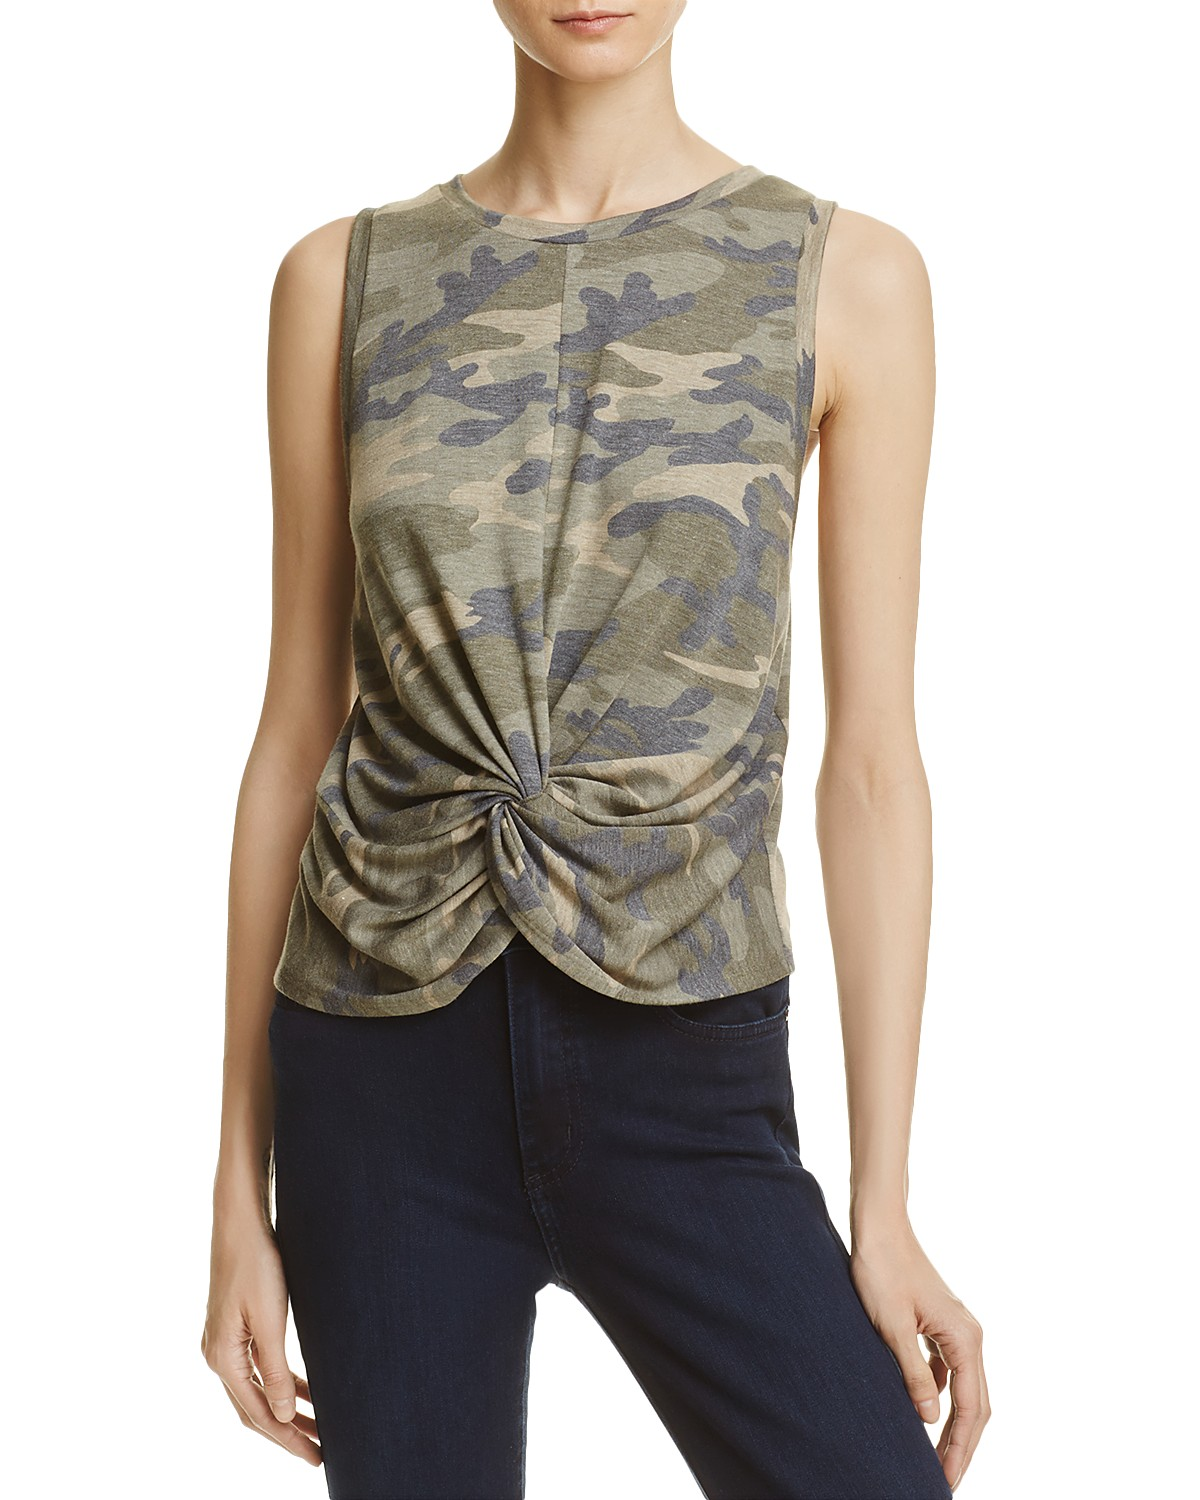 Aqua Camouflage Twisted-Front Tank - 100% Exclusive Buy Cheap Best Place Discount Visit Sneakernews MORY6